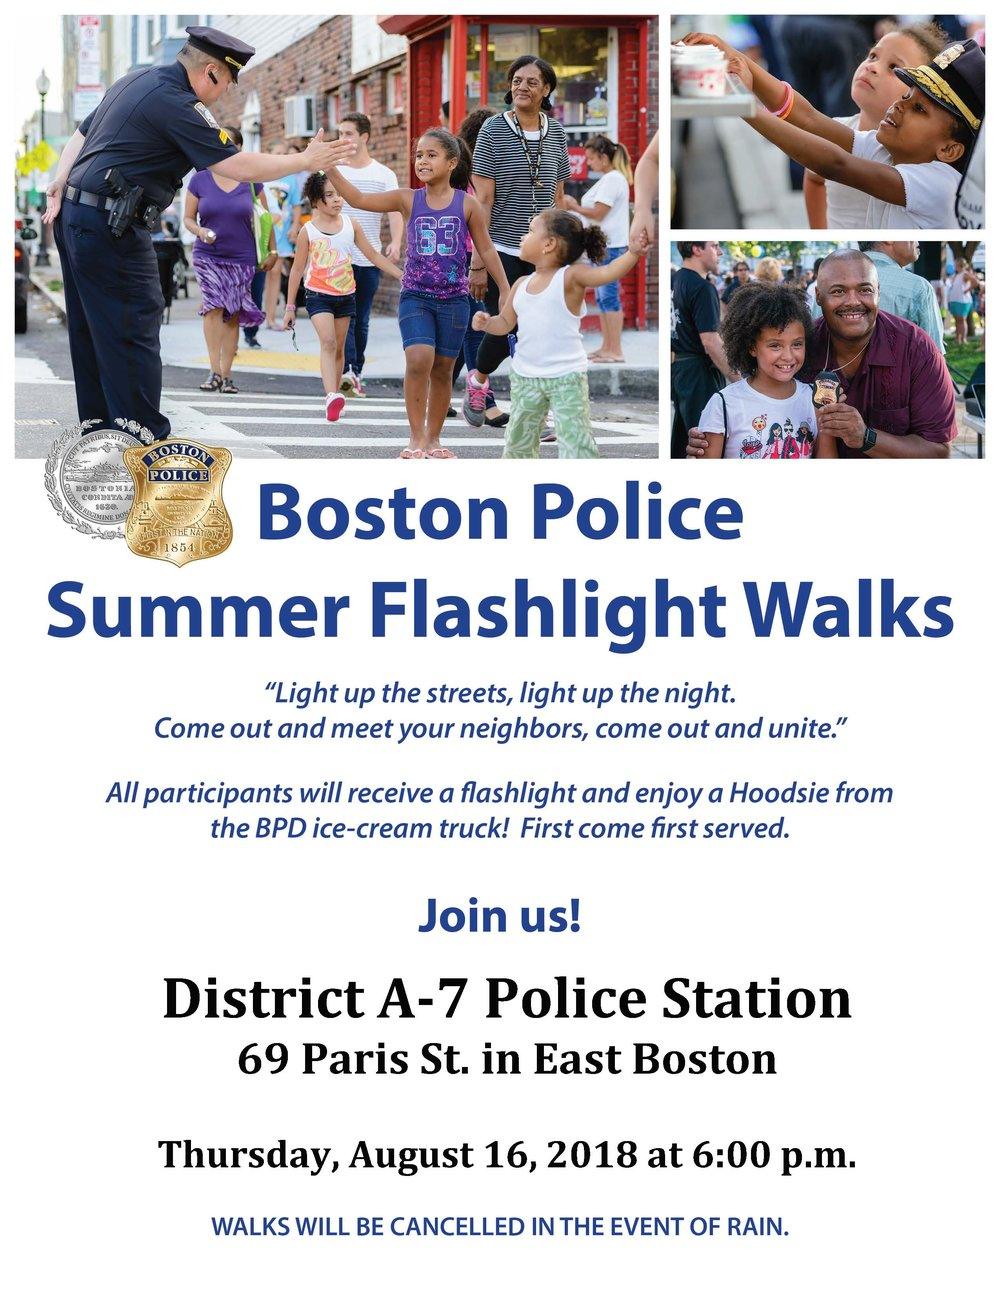 BPD in the Community: We Hope to See You Tomorrow Night at the Boston Police Summer Flashlight Walk in East Boston